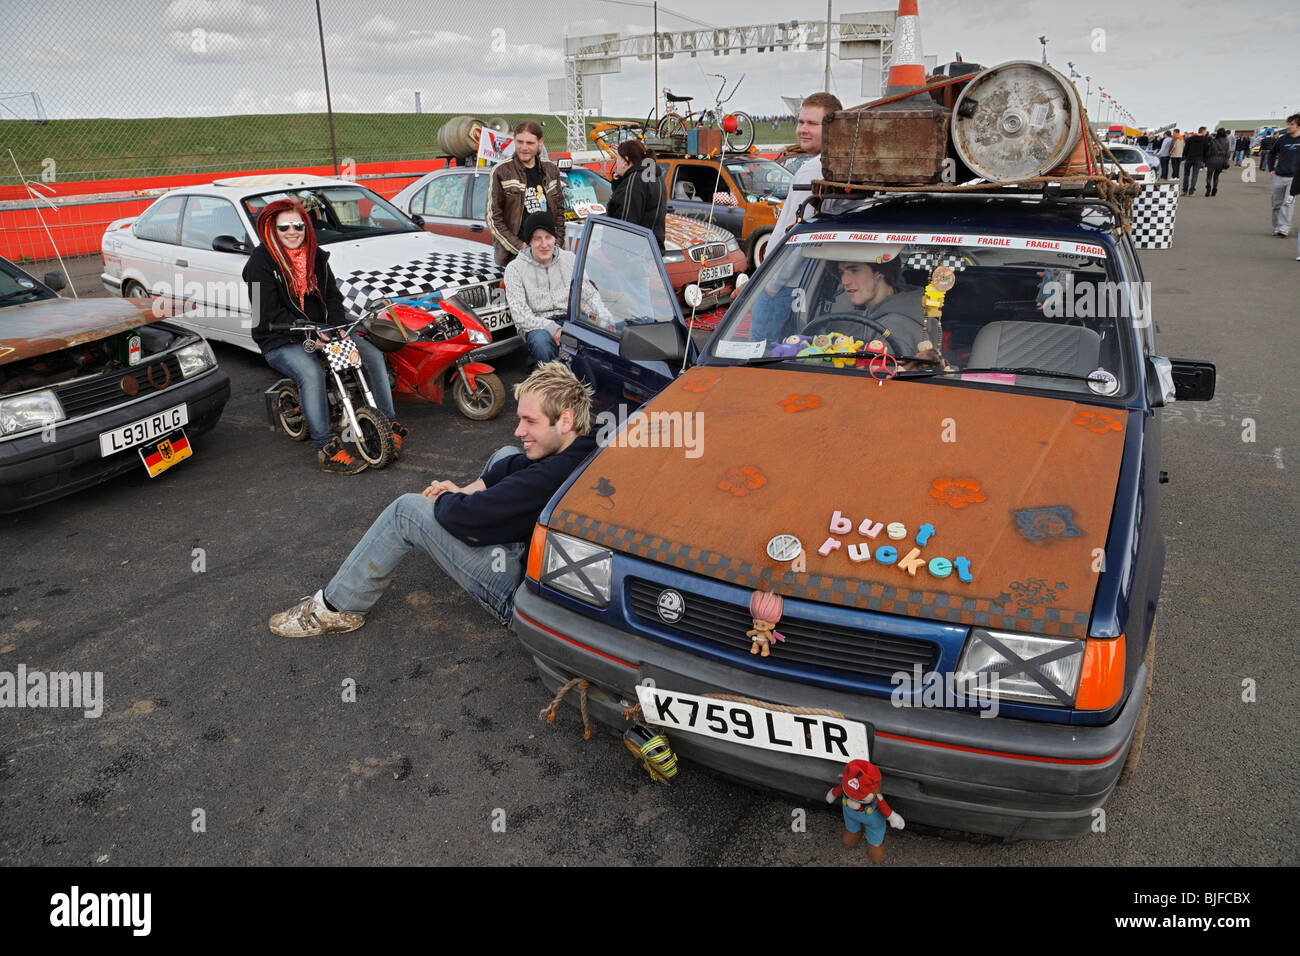 Collection of alternative Rat look cars Stock Photo: 28613198 - Alamy